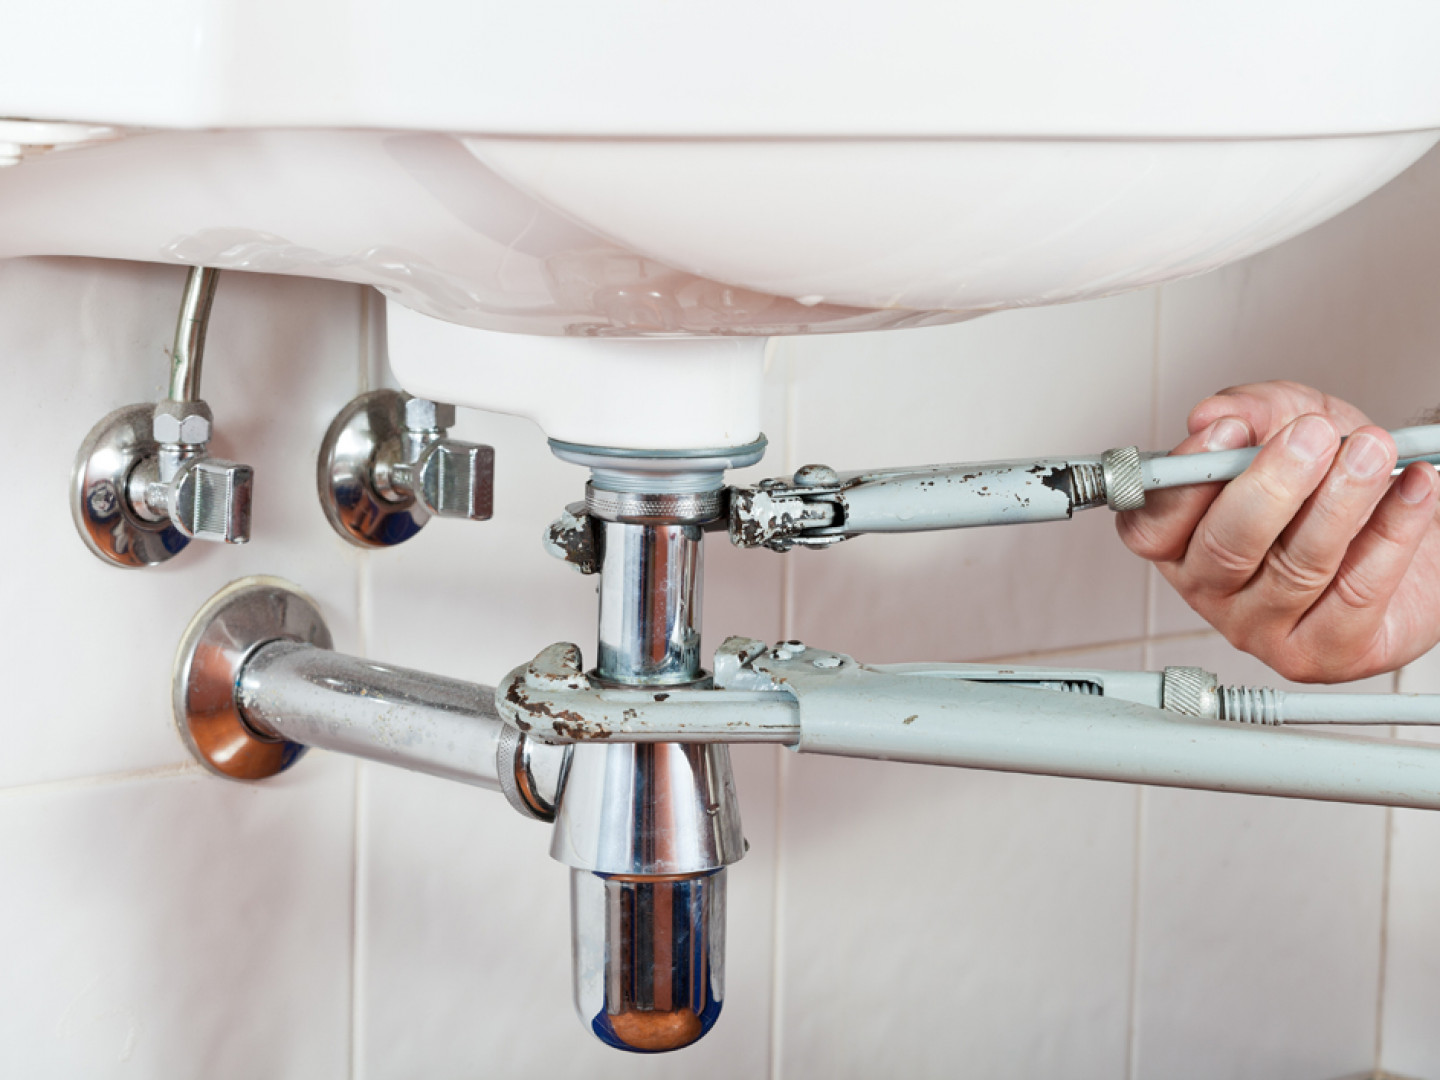 Discover what kinds of plumbing problems we can deal with